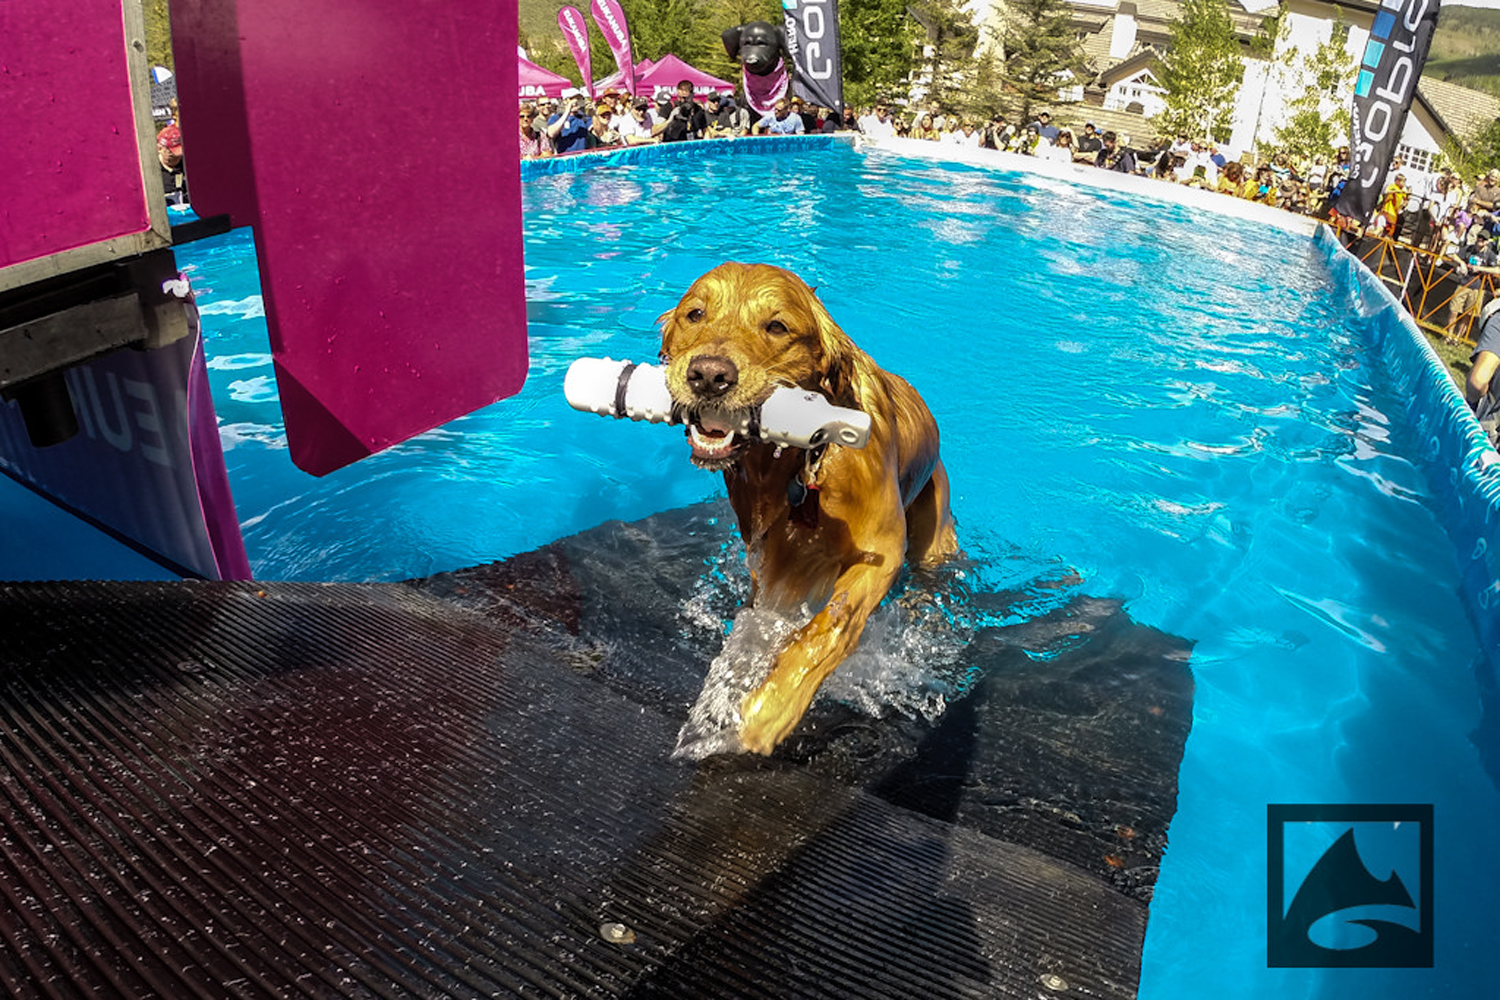 Canine participants in the DuckDogs Big Air competition – a long jump for dogs – carried toys back to their owners after leaping off the end of a dock and into a pool.